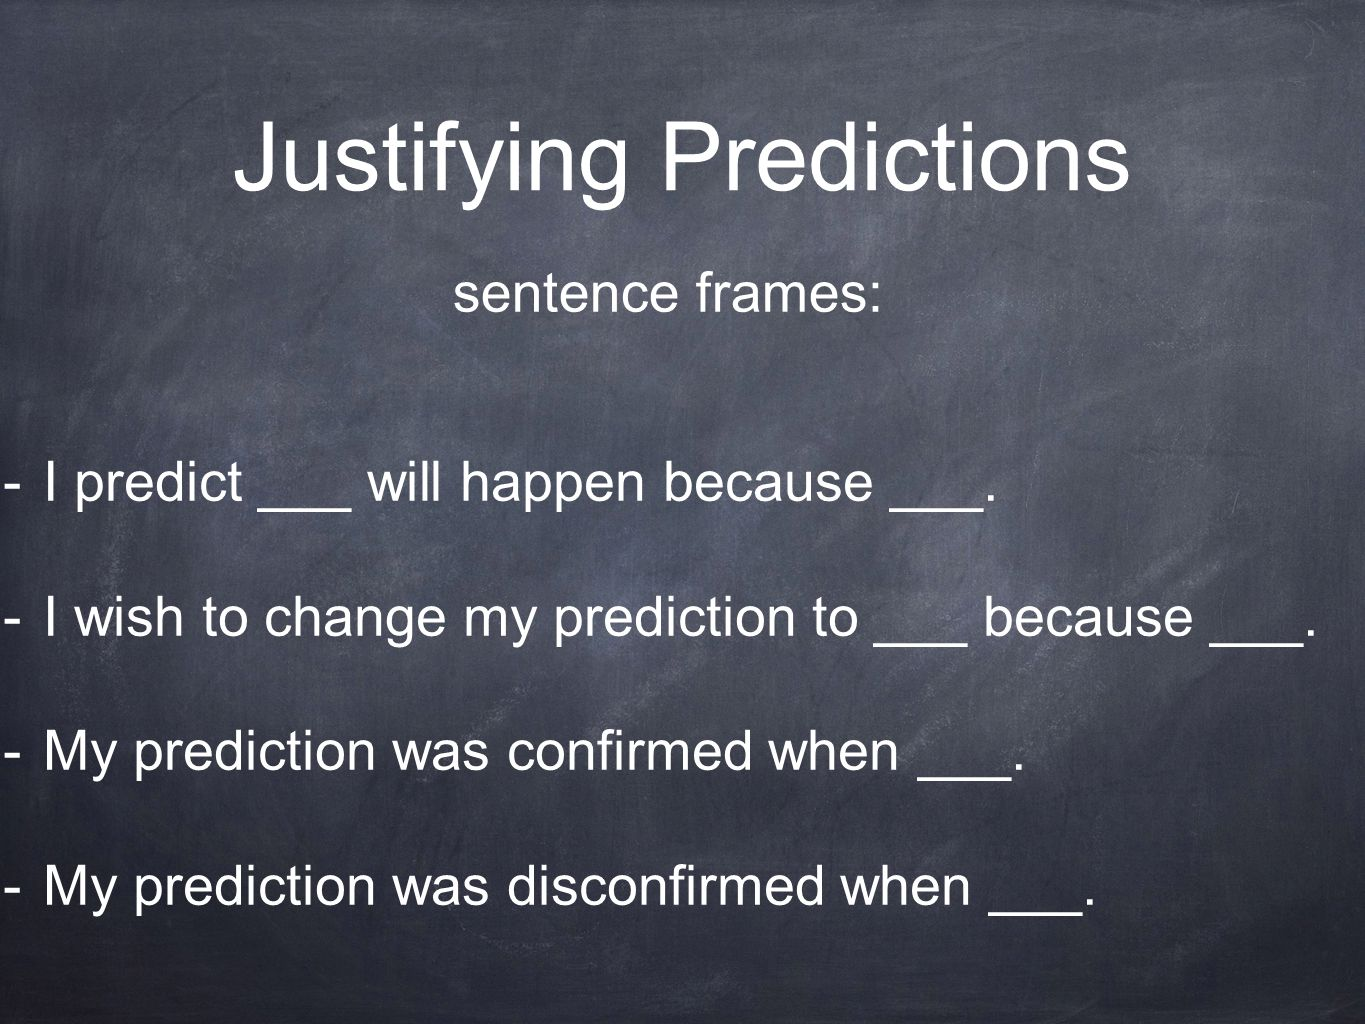 Justifying Predictions sentence frames: -I predict ___ will happen because ___. -I wish to change my prediction to ___ because ___. -My prediction was